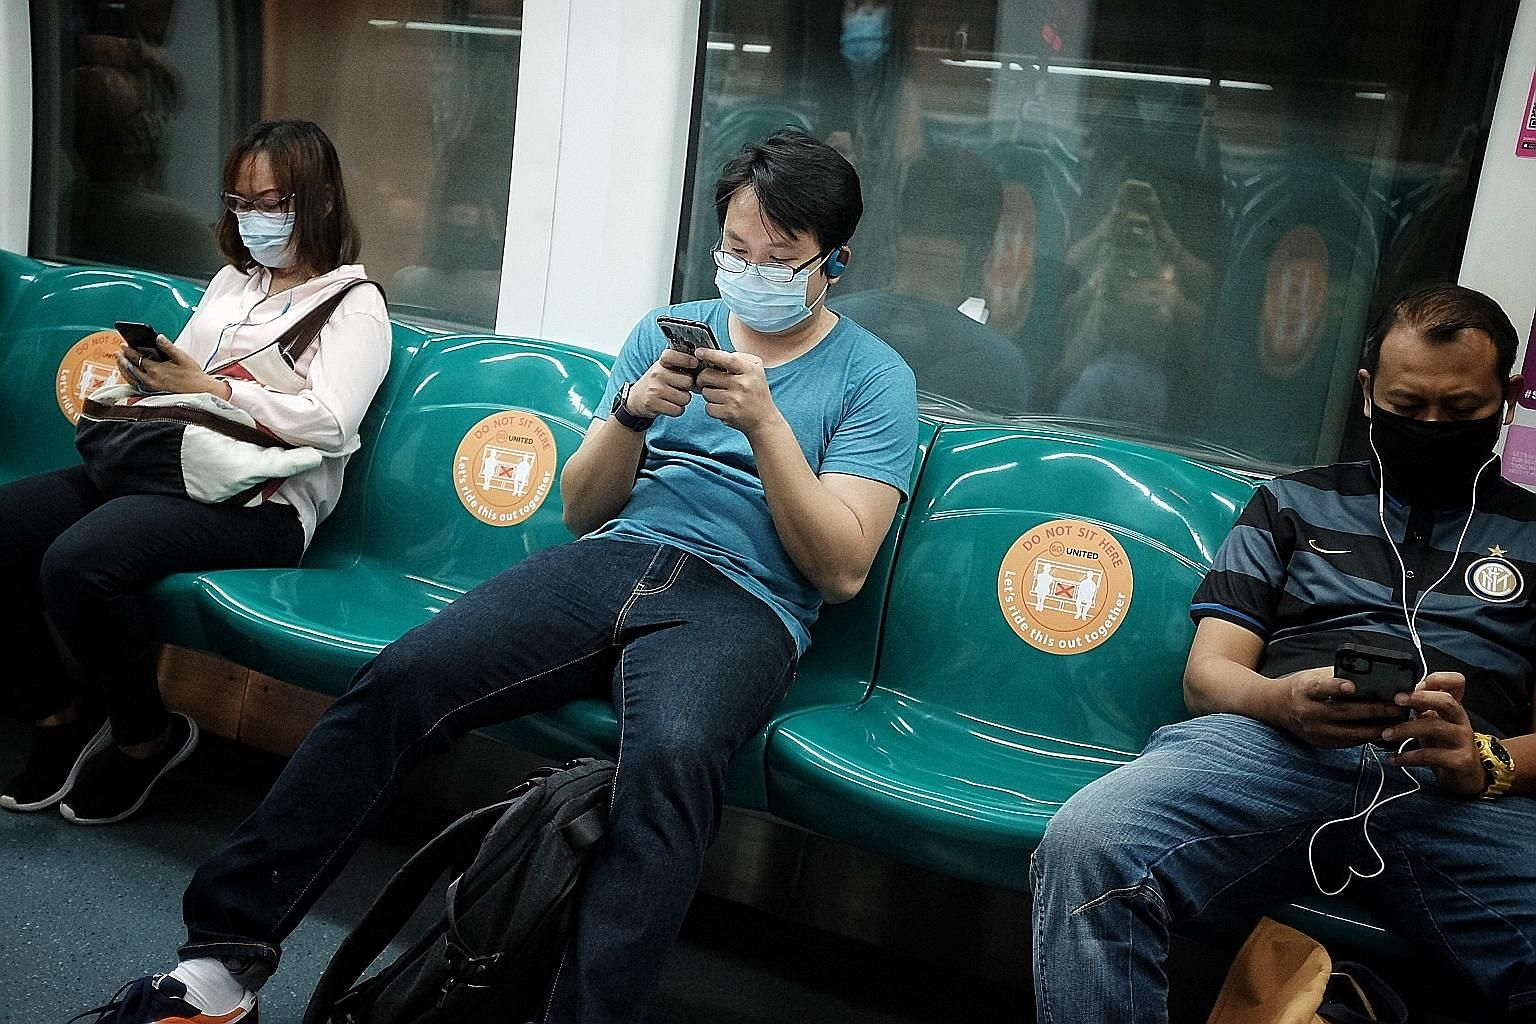 MRT commuters observing safe distancing at about 9.30am yesterday. Standing spaces and seats that should be avoided will be marked out with stickers, and thermal scanners will be deployed at selected MRT stations.